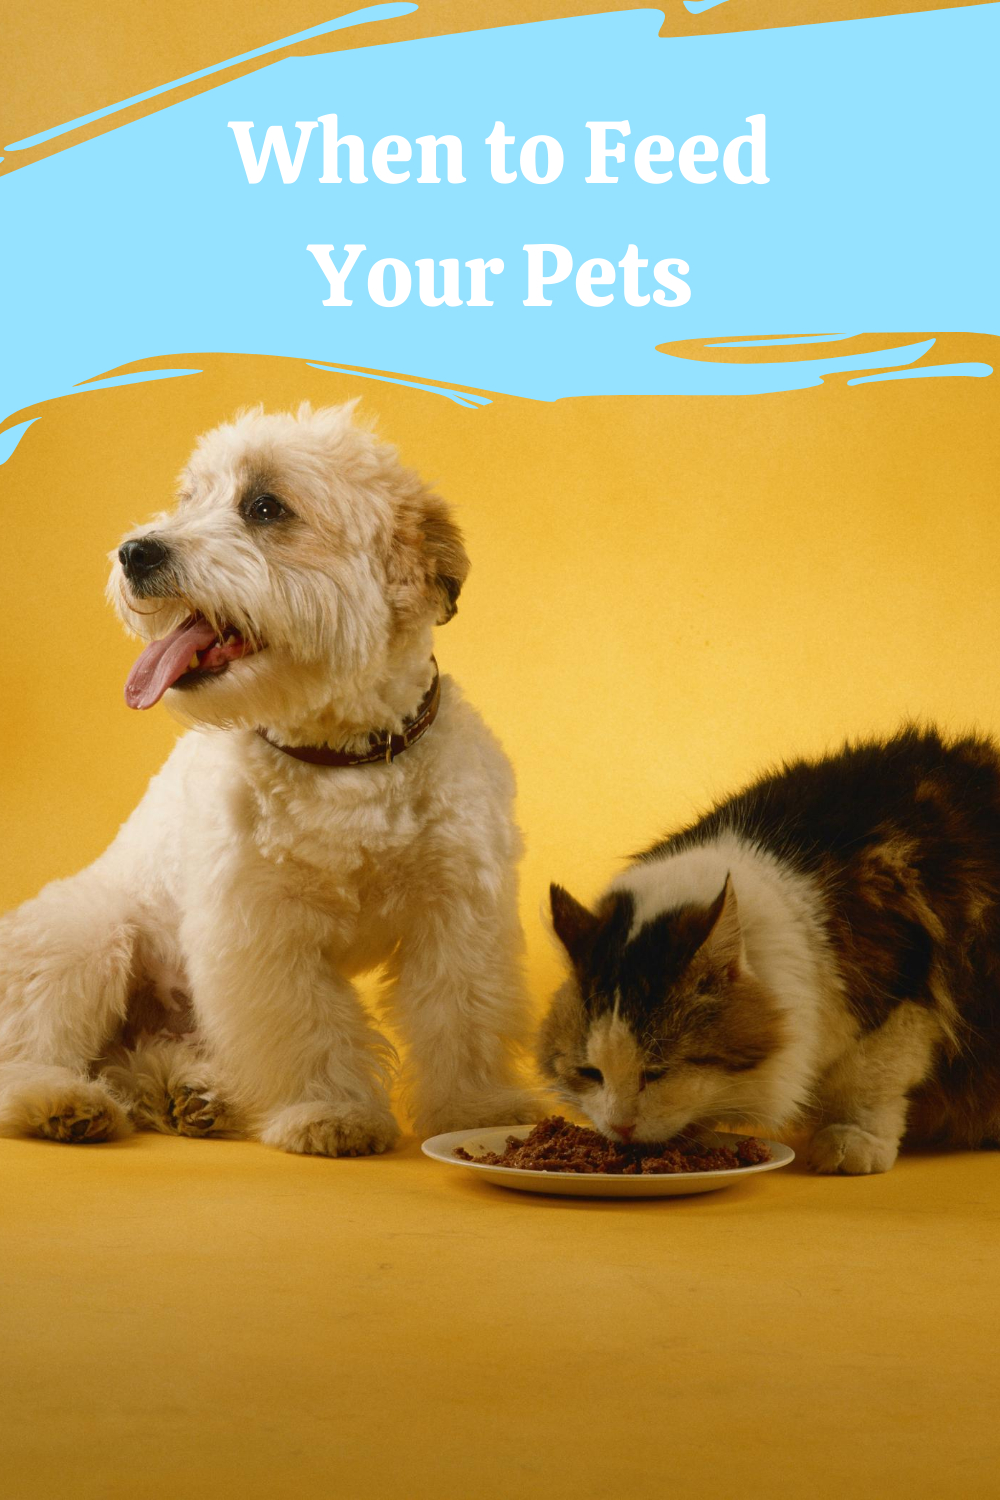 When to Feed Your Pets